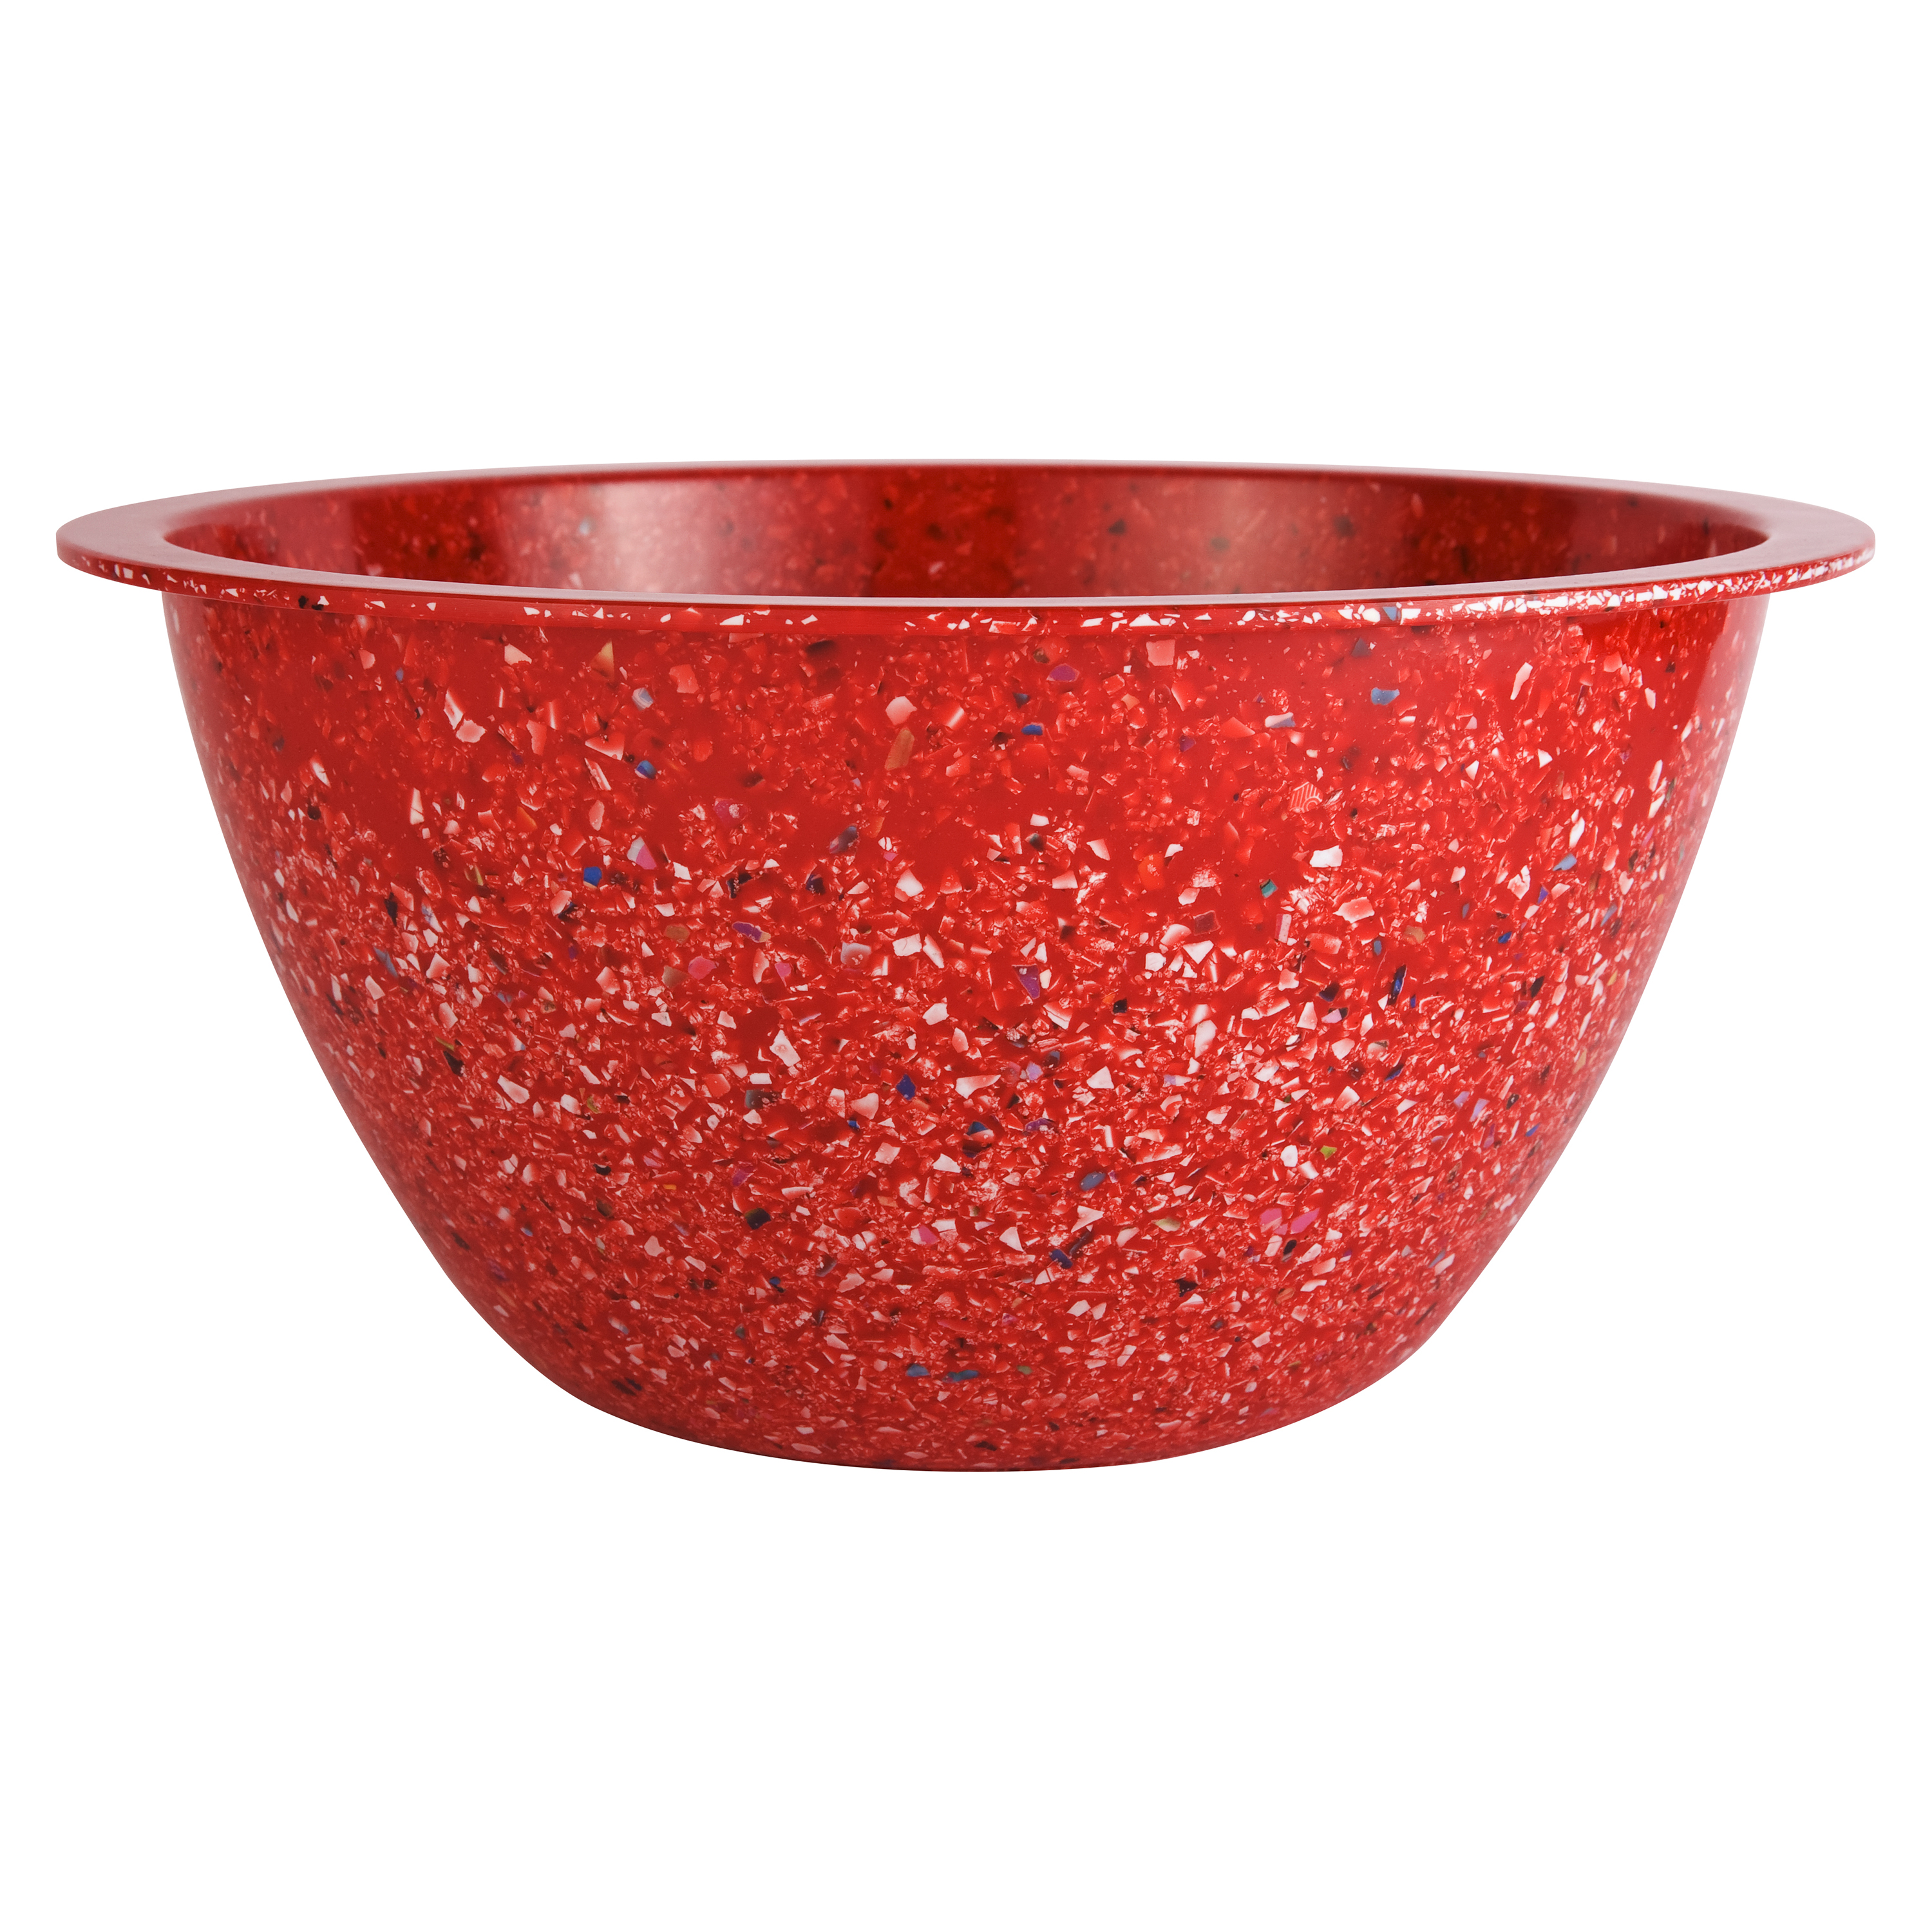 Zak DesignsConfetti Extra Large Mixing Bowl - Red